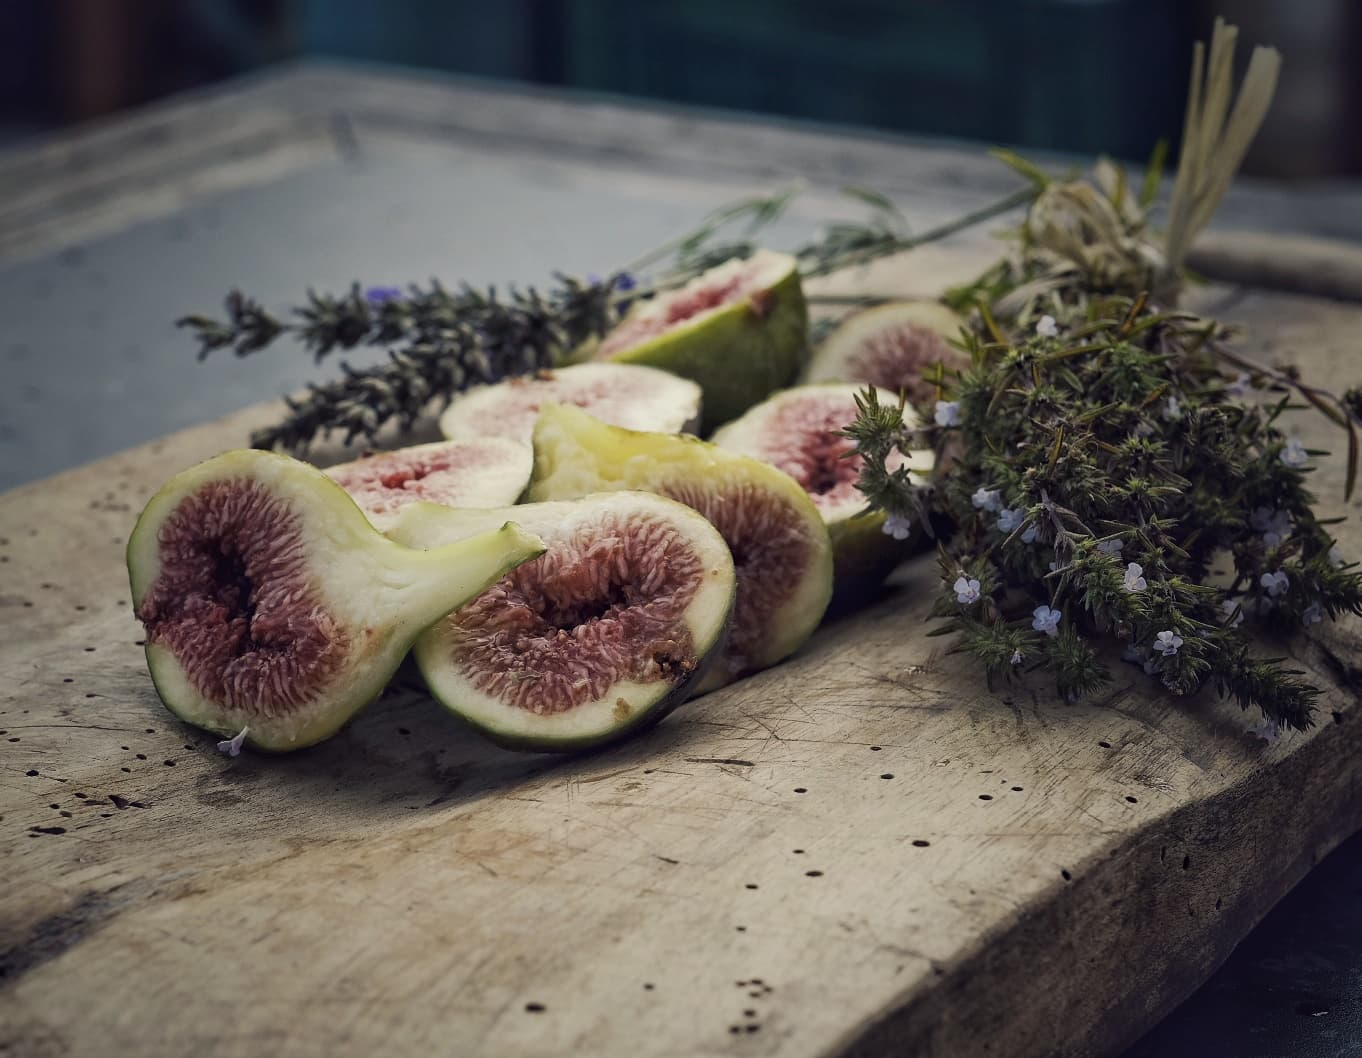 Figs and herbs.jpg